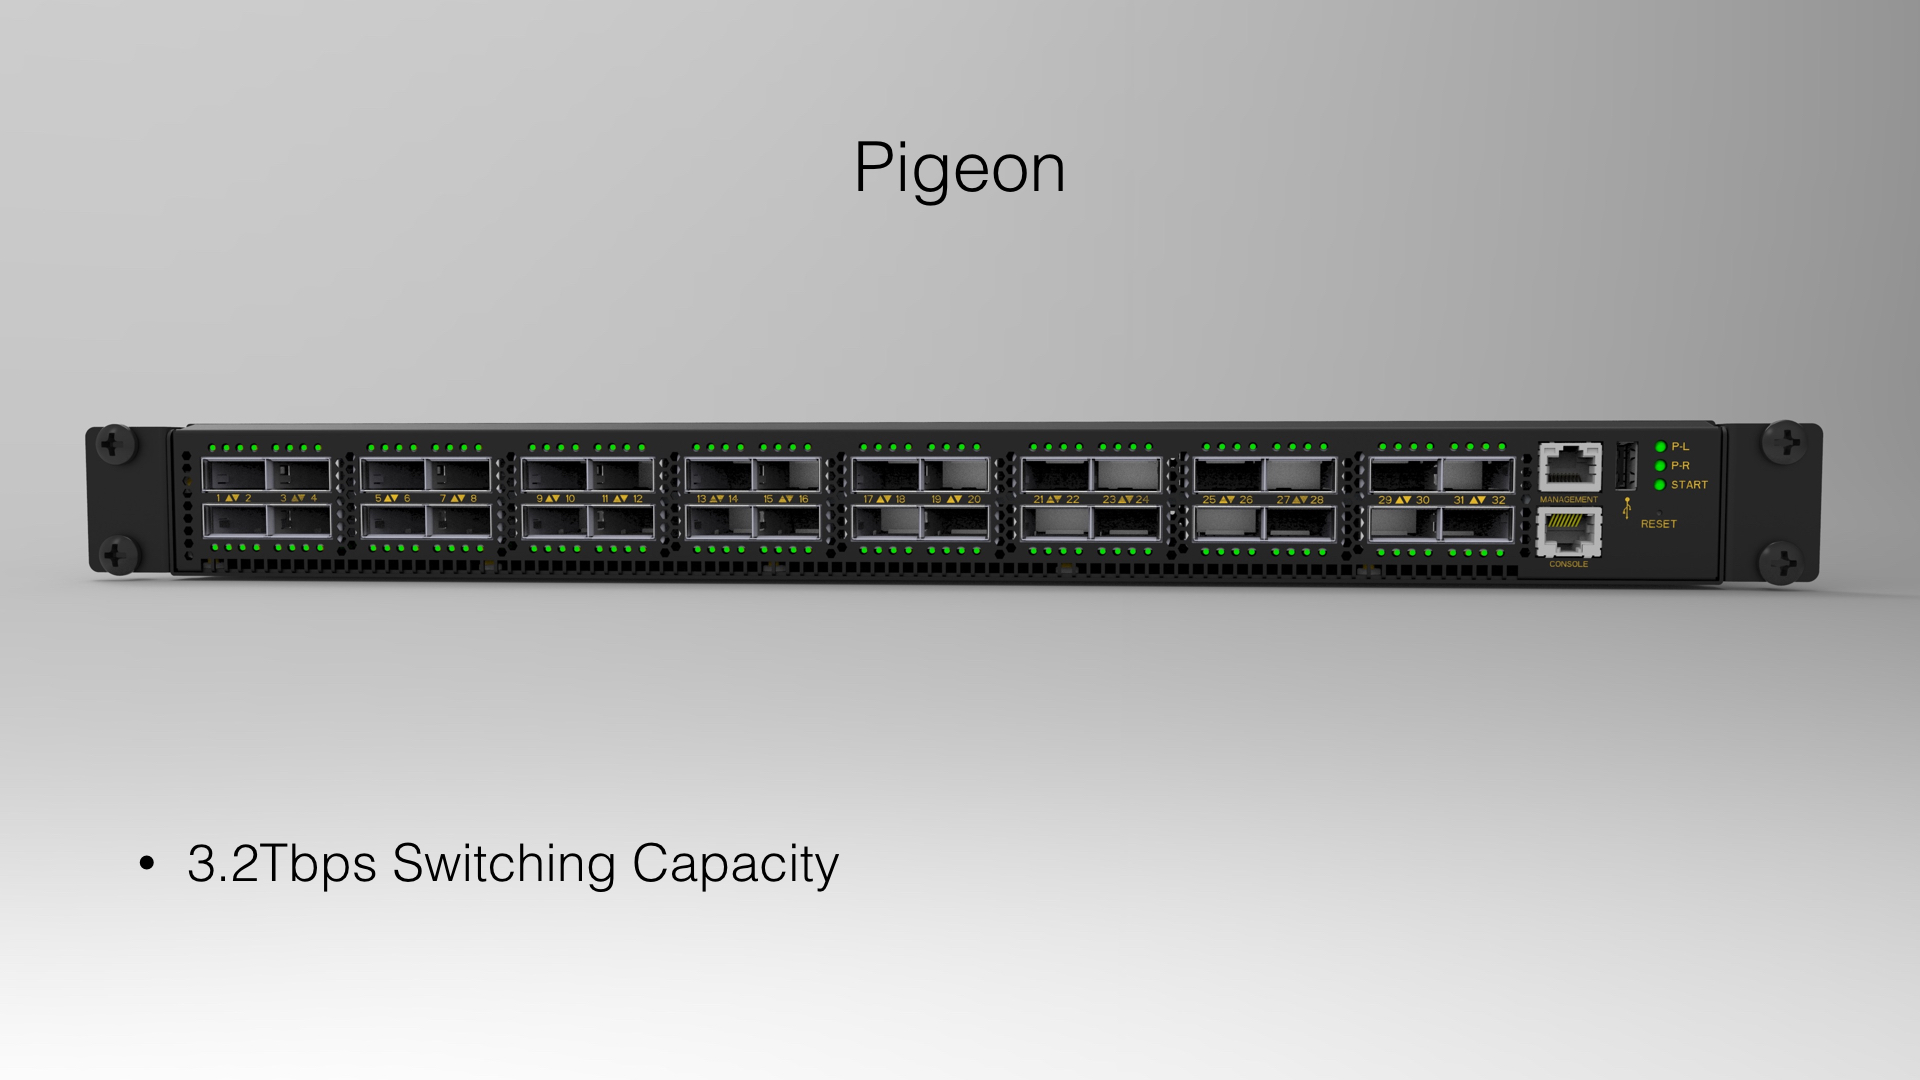 Pigeon switch